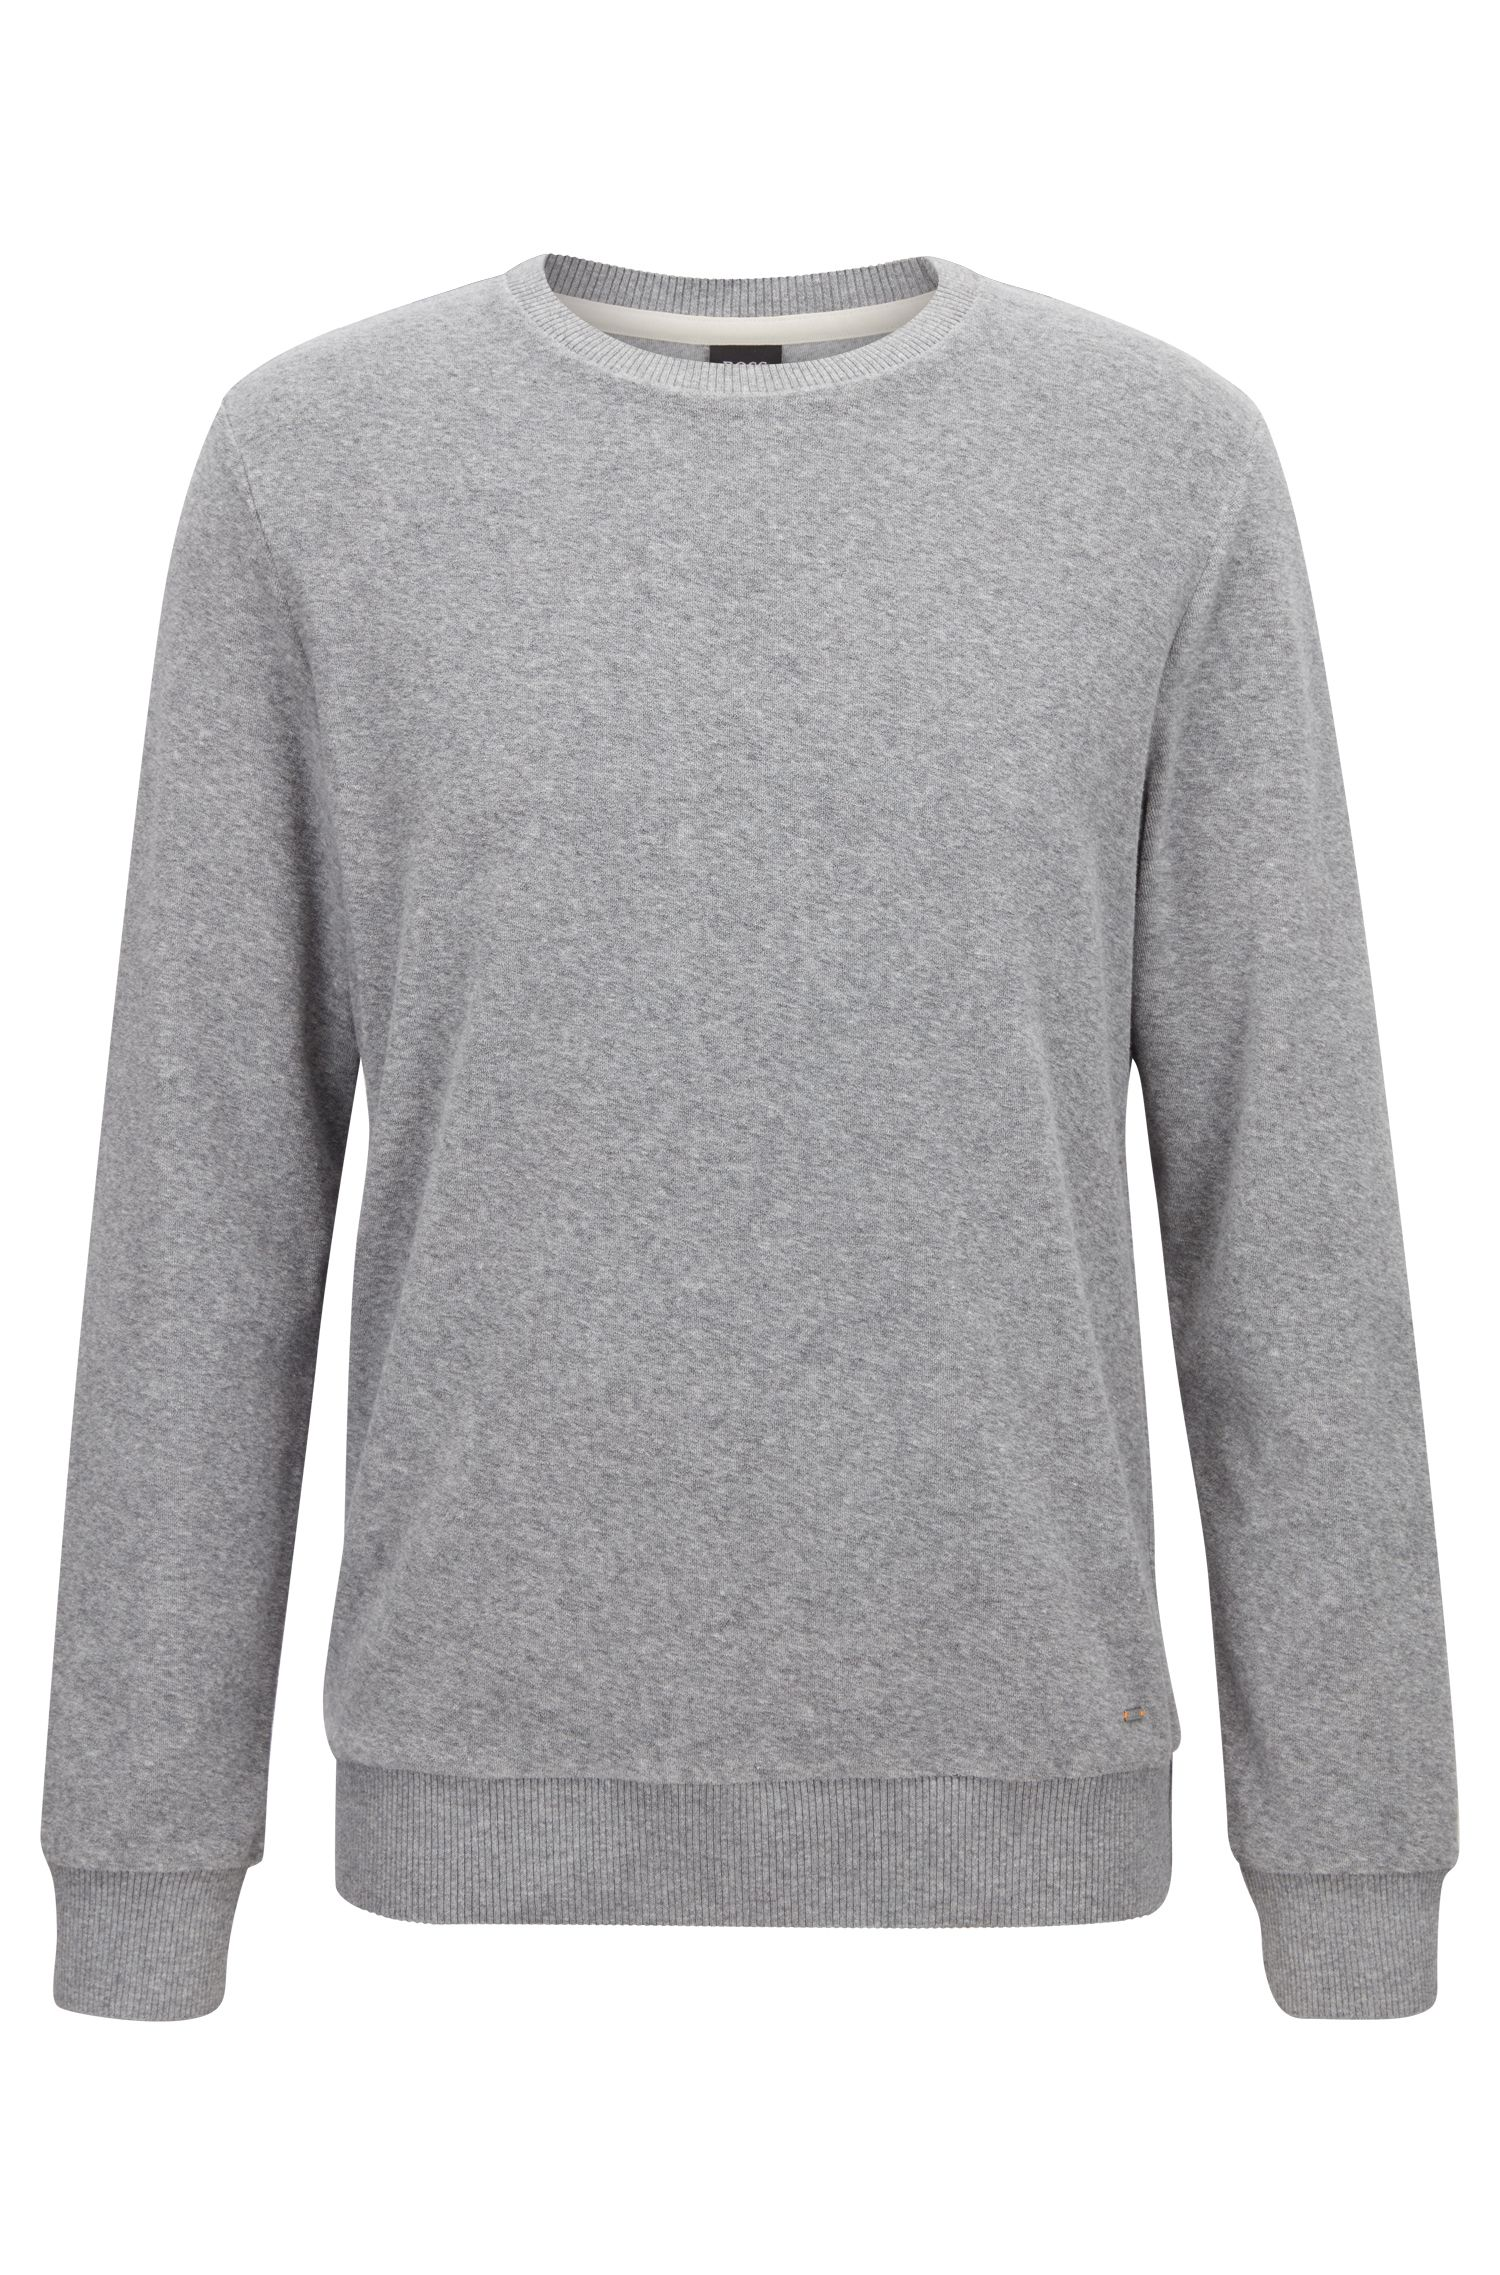 T-shirt Regular Fit en jersey éponge à manches longues, Gris chiné